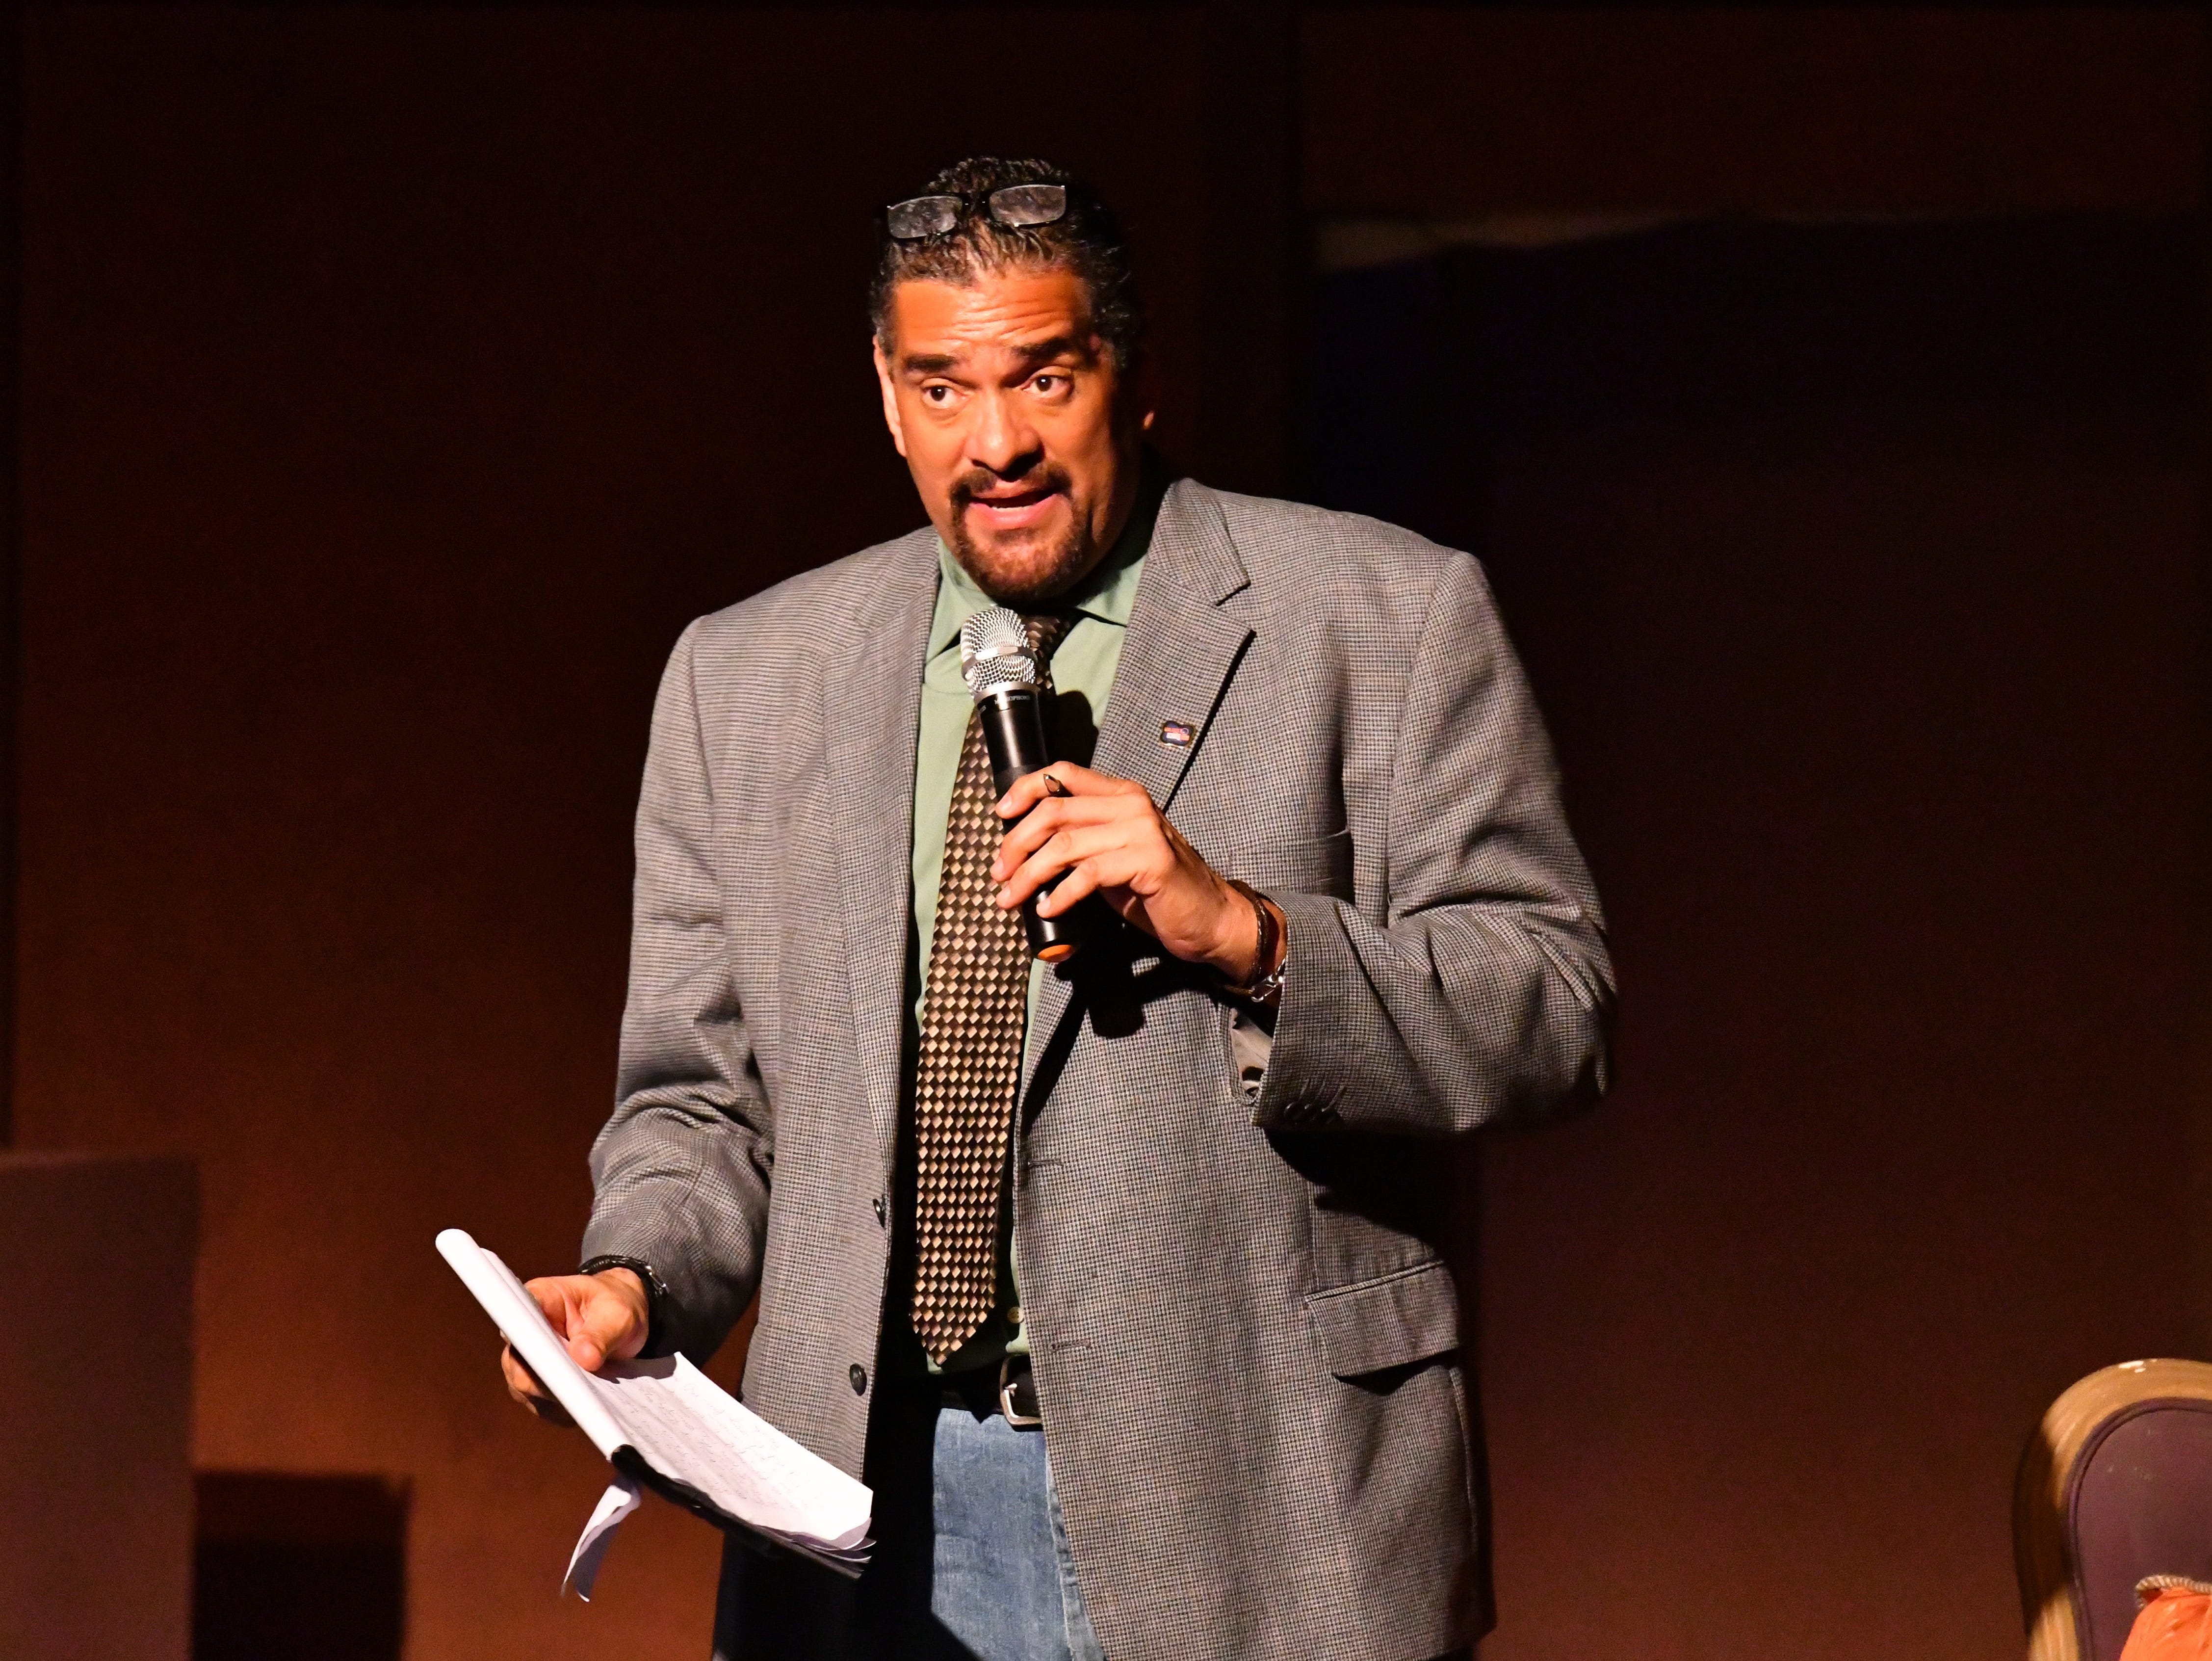 FLORIDA TODAY columnist John A. Torres hosted Murder on the Space Coast Live at the Surfside Playhouse in Cocoa Beach  and now he will emcee Saturday's TEDx event there.